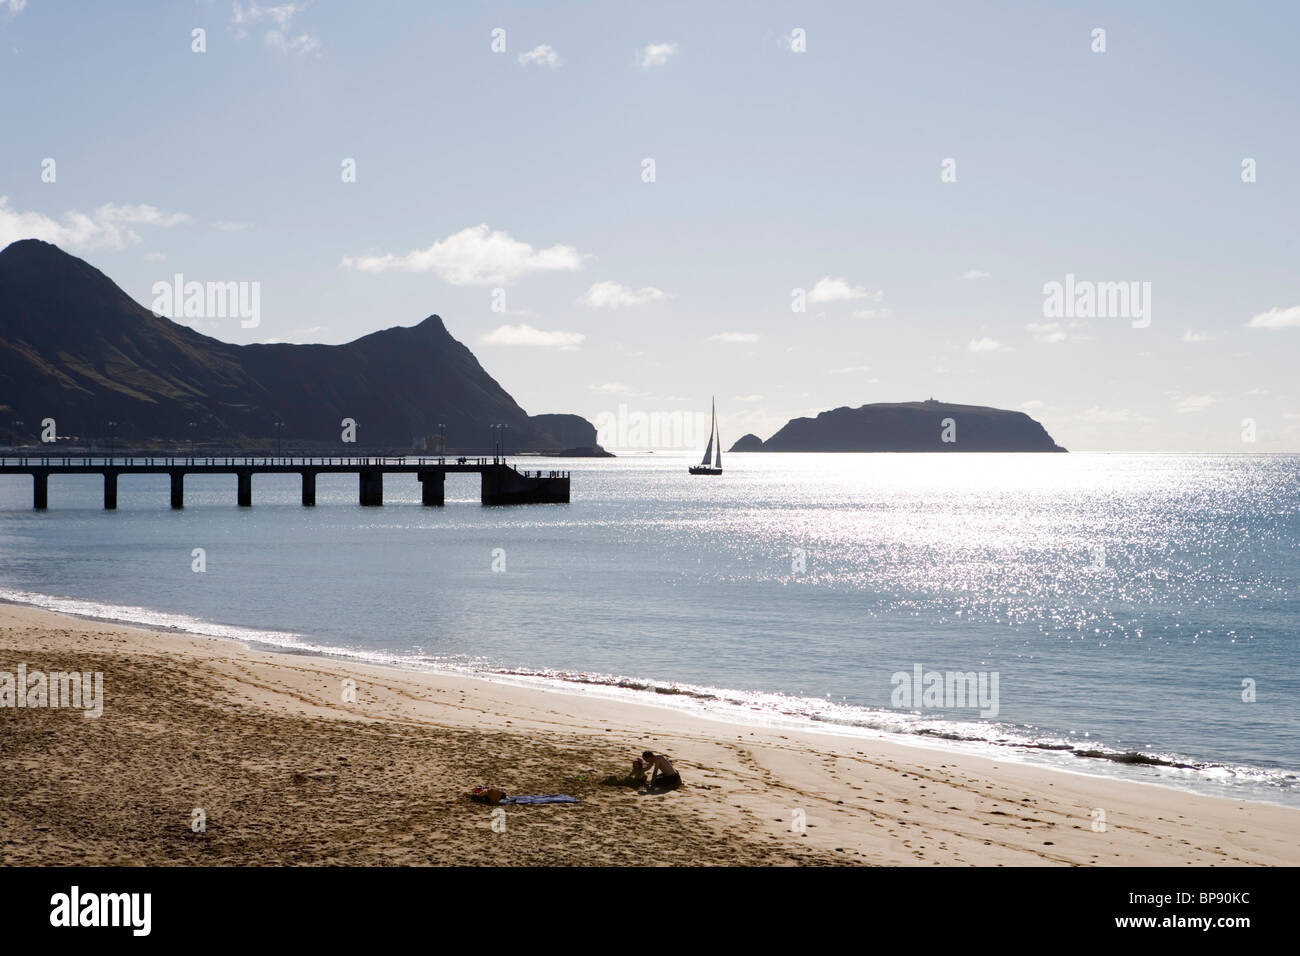 Sailboat, Pier and Porto Santo Beach, Porto Santo, near Madeira, Portugal - Stock Image